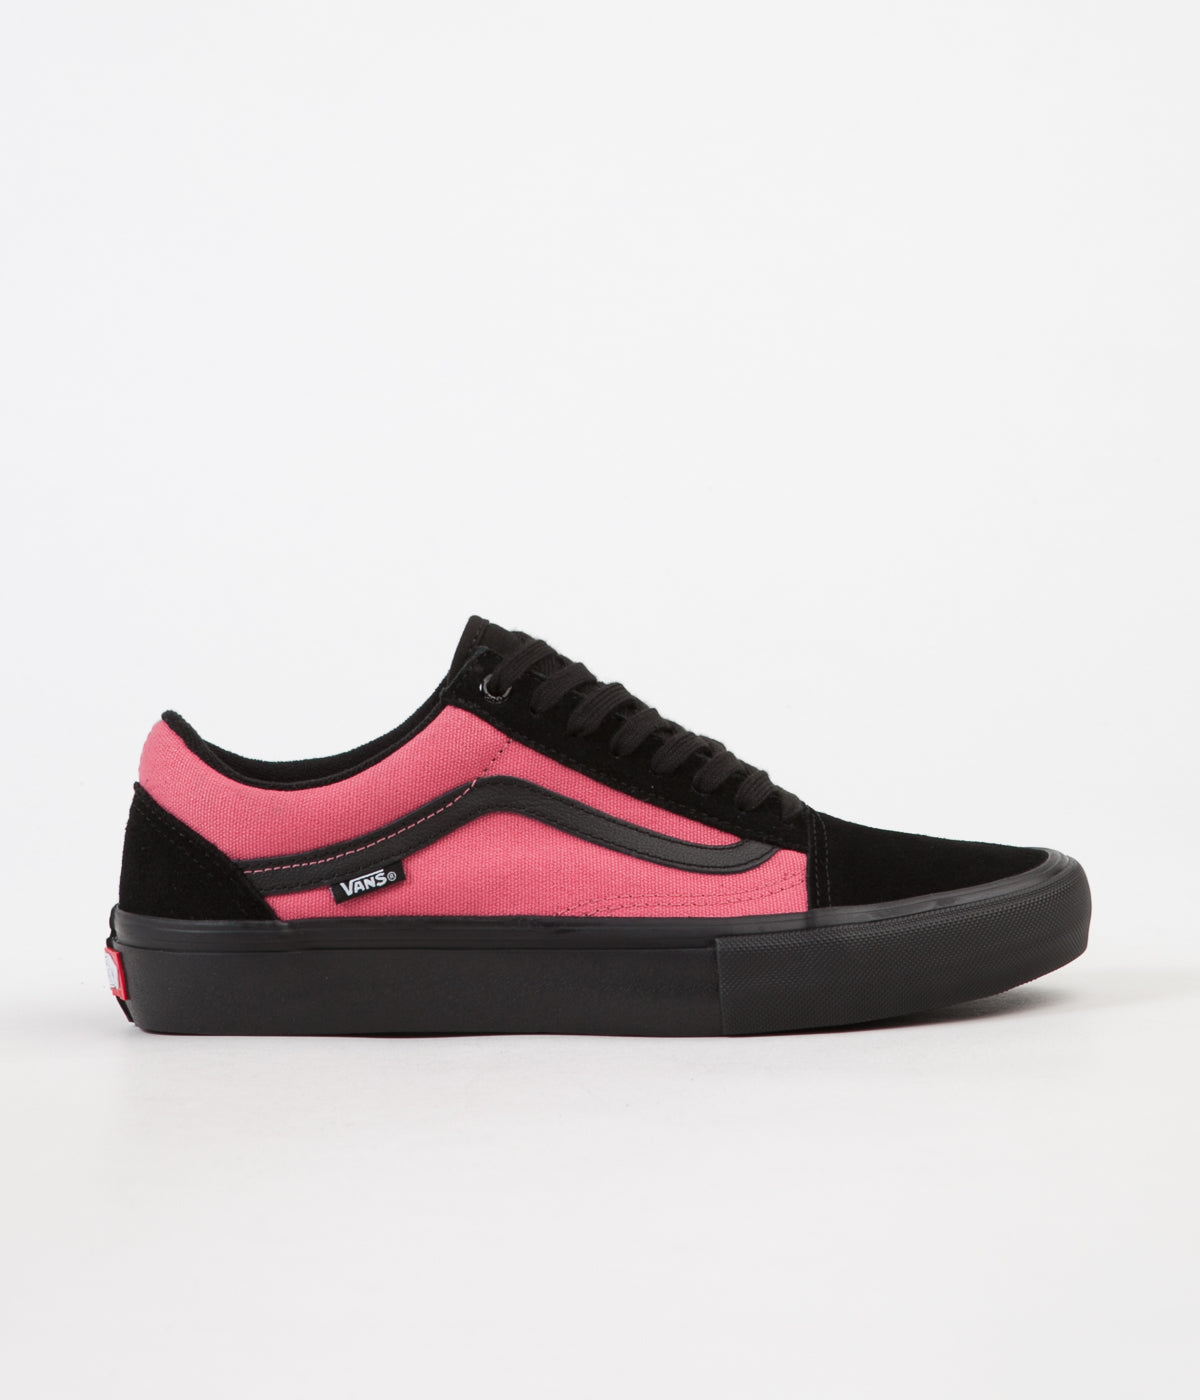 bfd14fcfbe5f Vans Old Skool Pro Asymmetry Shoes - Black   Rose   Blue